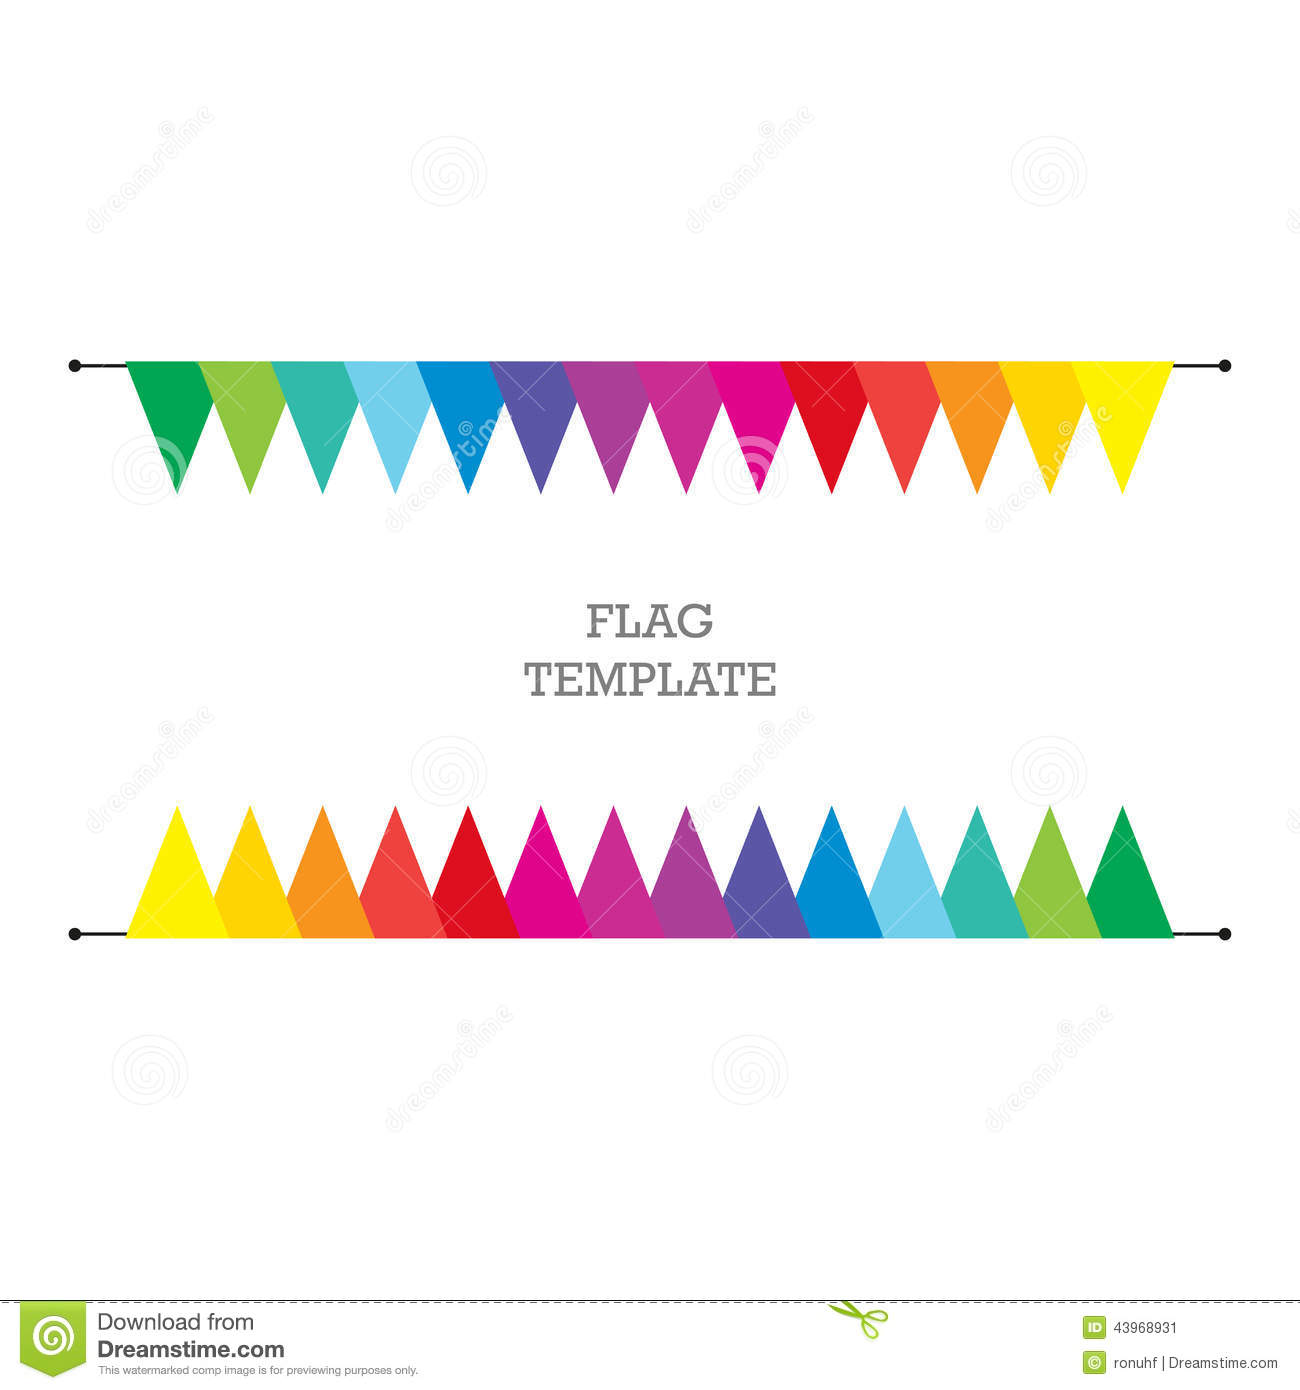 Flag Geometric Banner Background Bunting Or Swag Template For Scrapbooking Parties Baby Showers And Sales Illustration 43968931 Megapixl